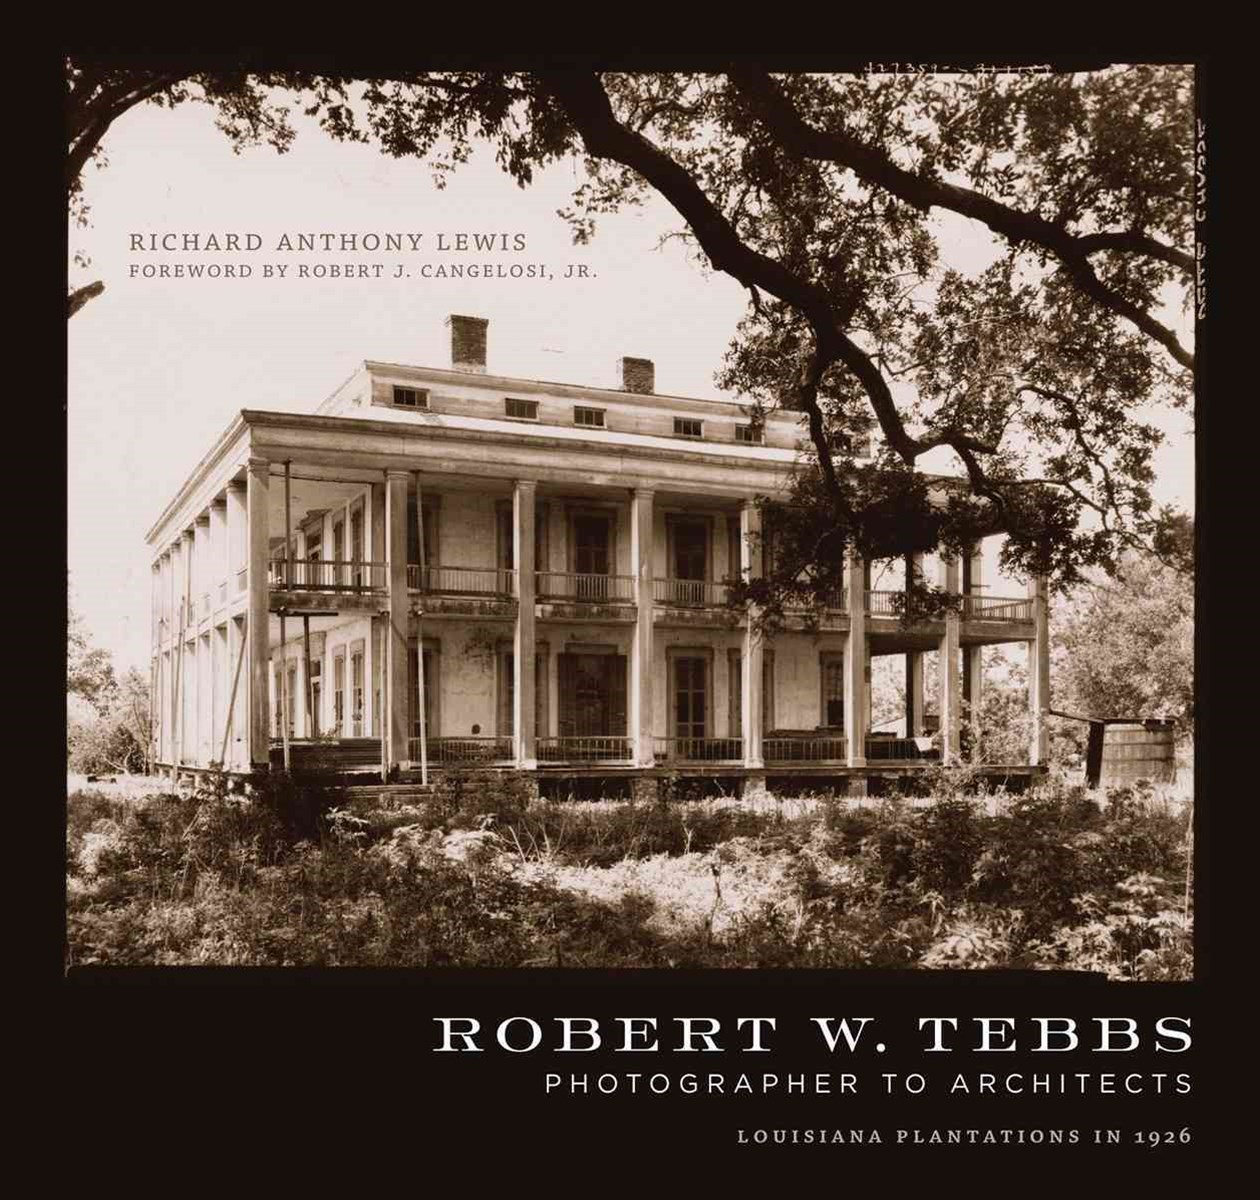 Robert W. Tebbs, Photographer to Architects